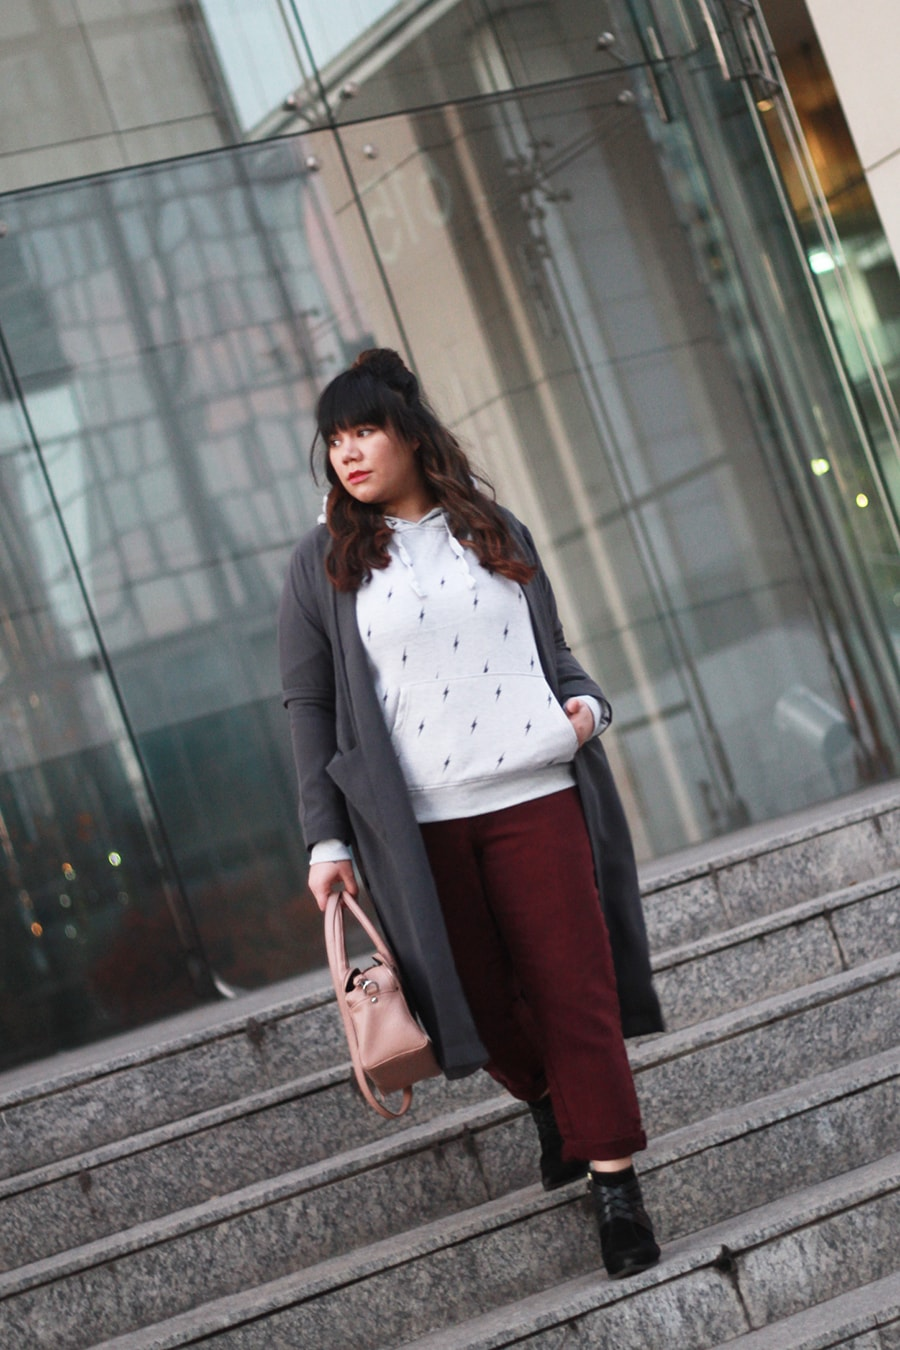 Sweaters for fall - sueter para otono - outfit ideas - sweater weather inspo